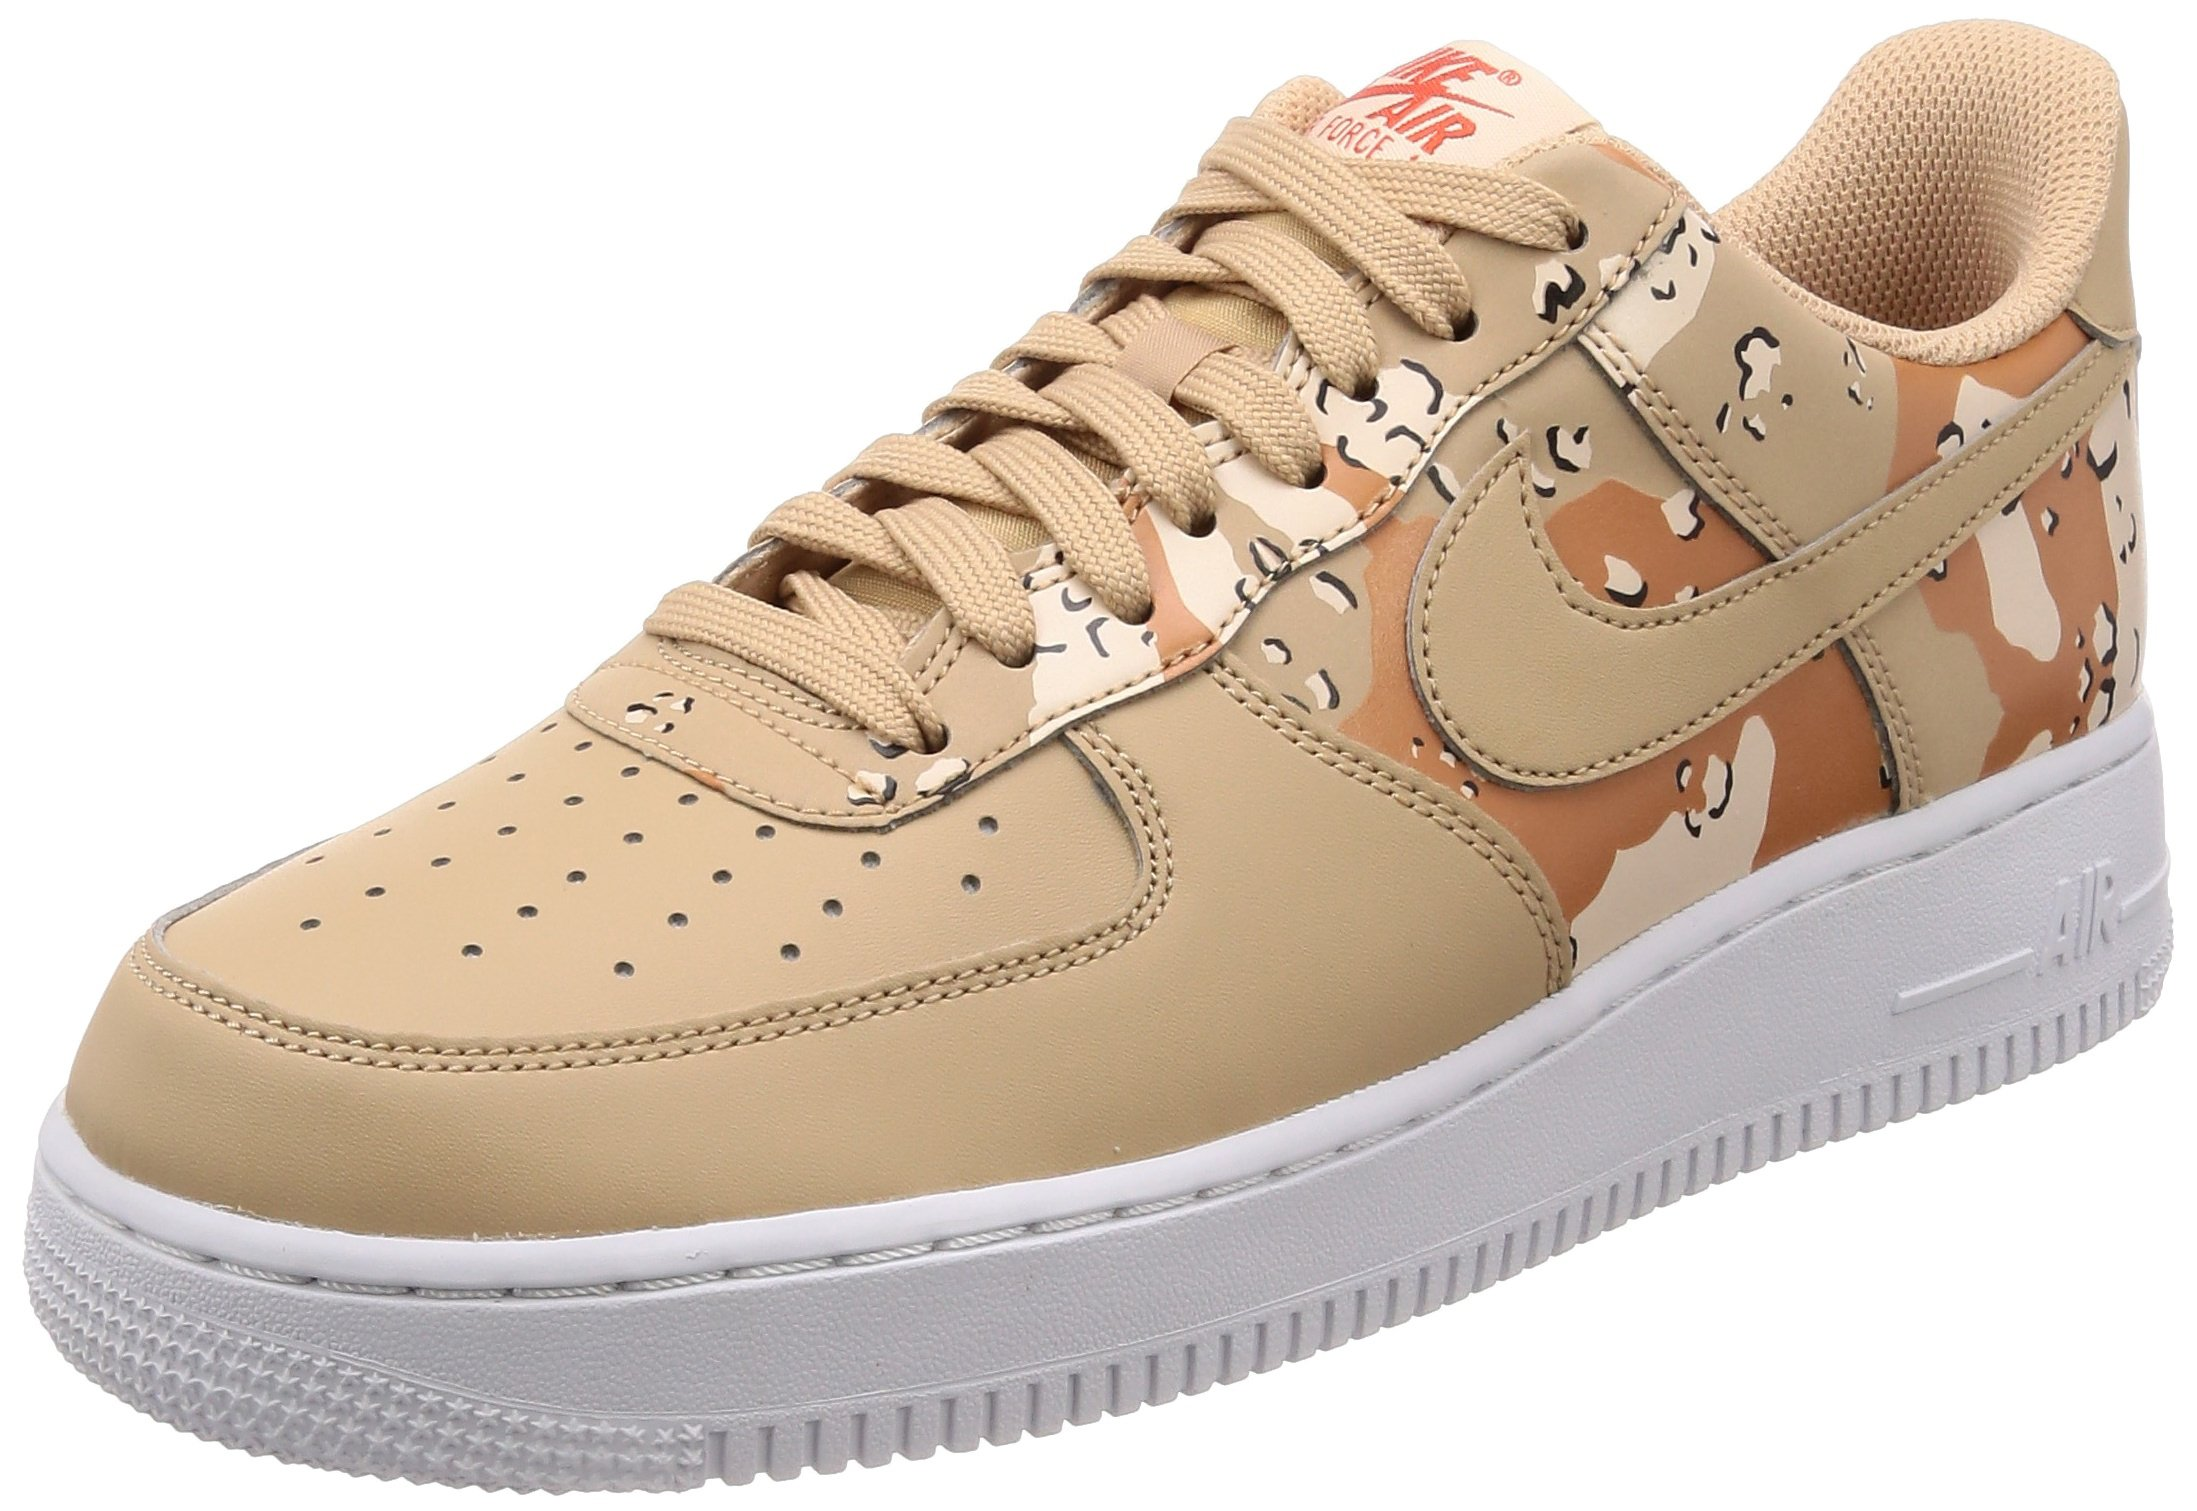 finest selection 5de56 14036 Galleon - Nike Mens Air Force 1  07 Low Camo Basketball Shoes (10 D(M) US)